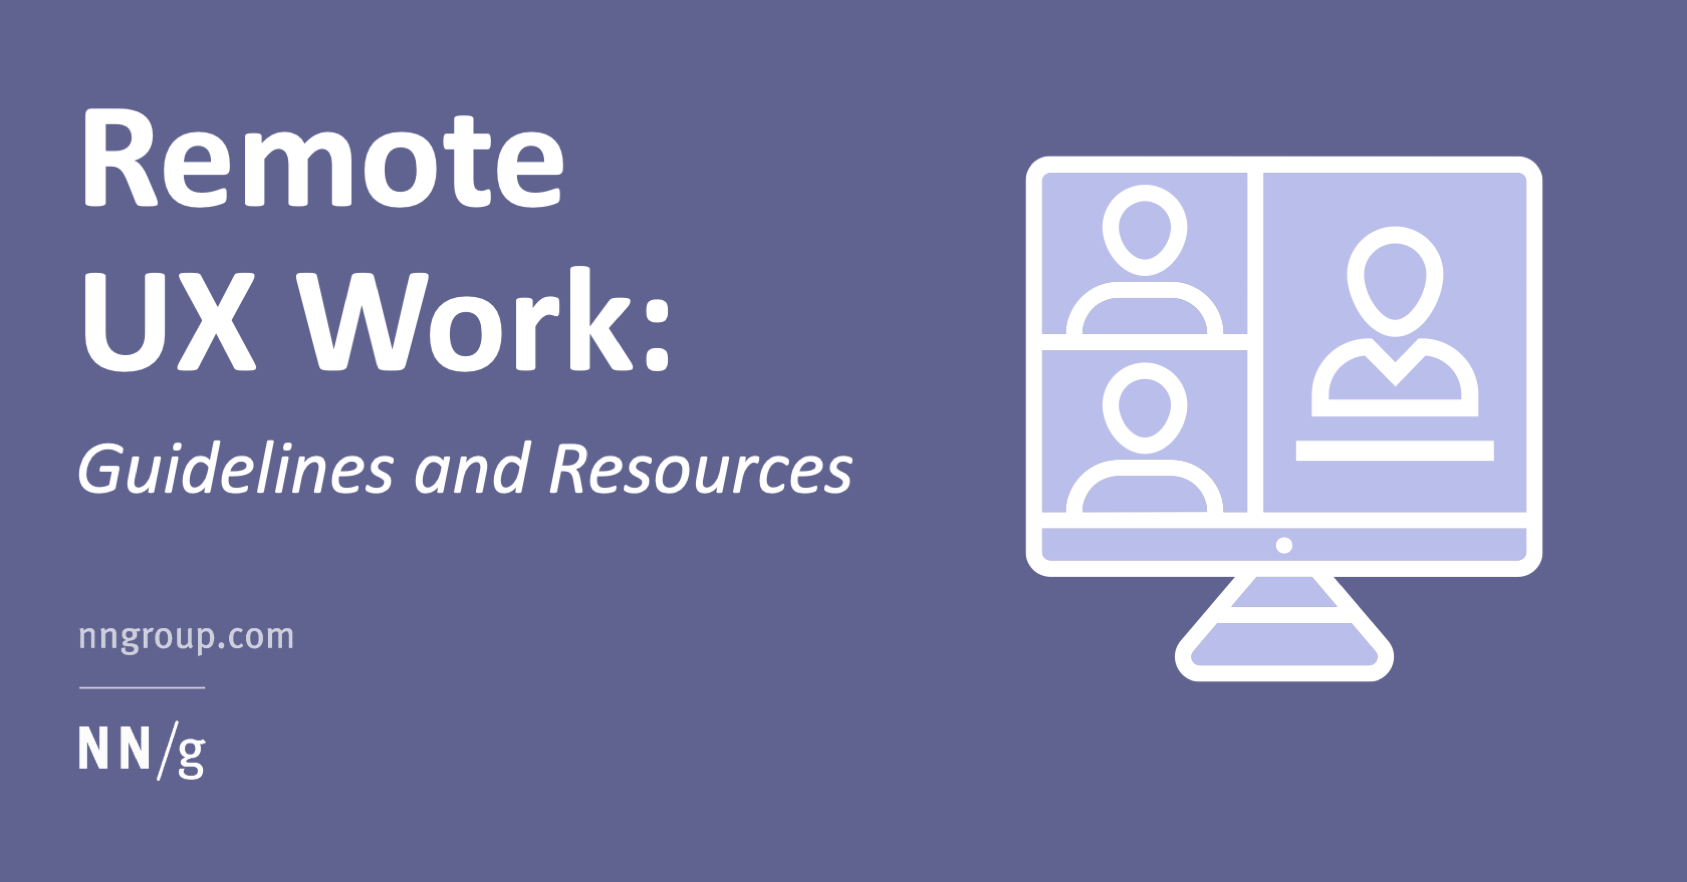 Remote UX Work: Guidelines and Resources